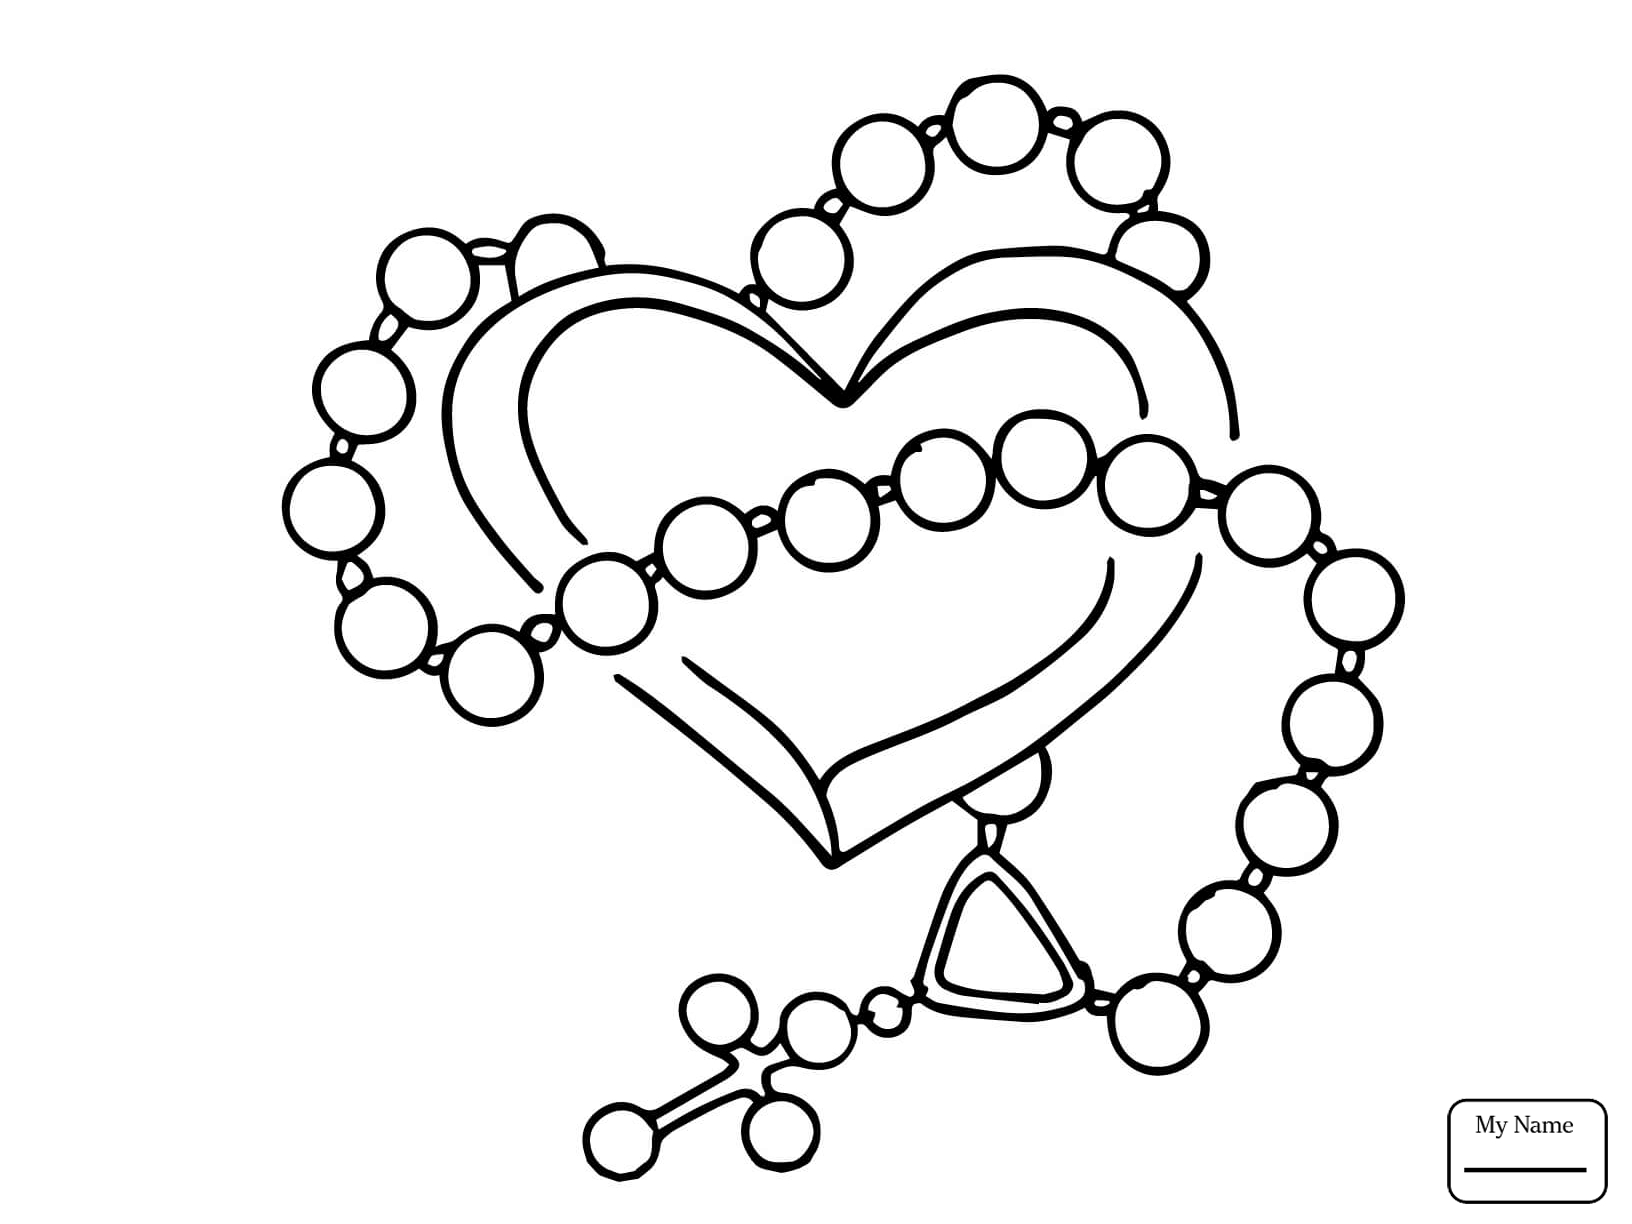 Rosary Beads Drawing at GetDrawings.com | Free for personal use ...